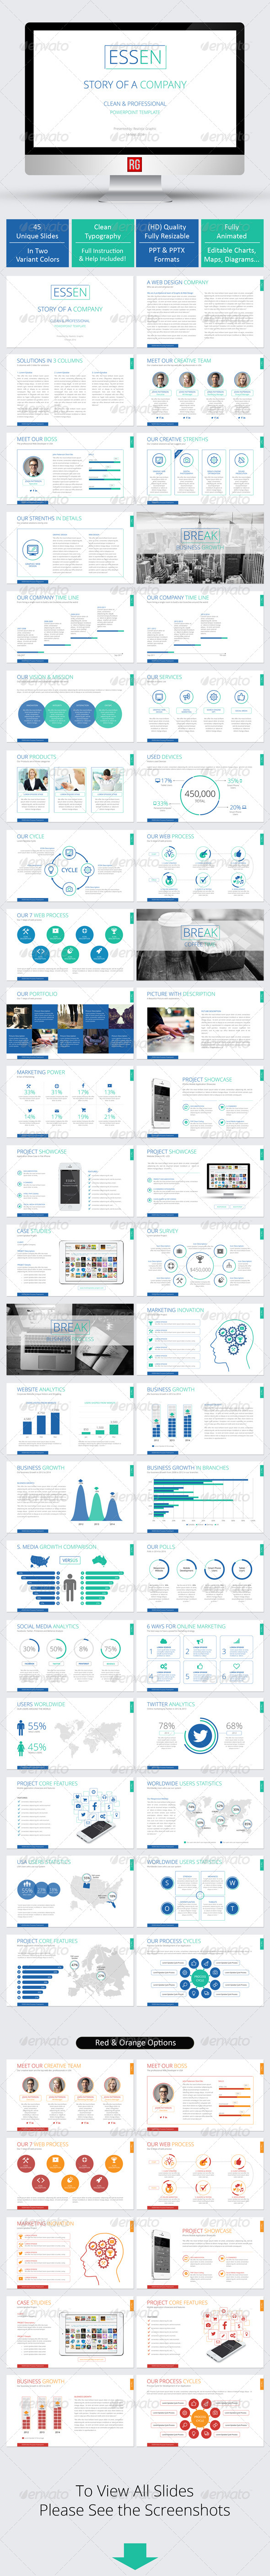 GraphicRiver ESSEN Multi-Purpose Powerpoint Template 7882643